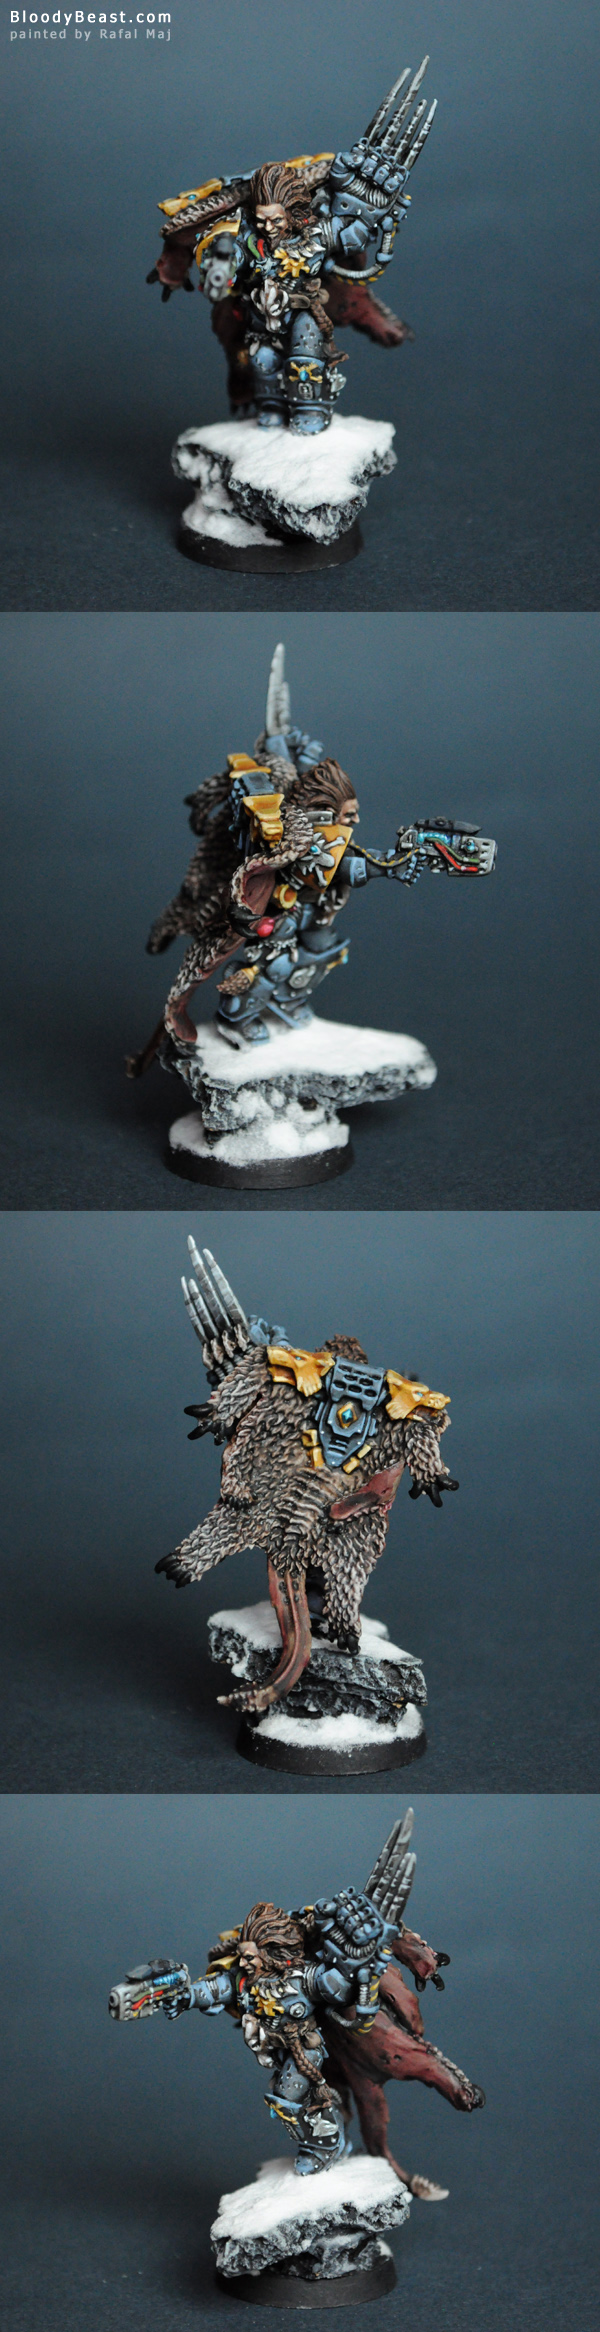 Space Wolf Lukas the Trickster painted by Rafal Maj (BloodyBeast.com)